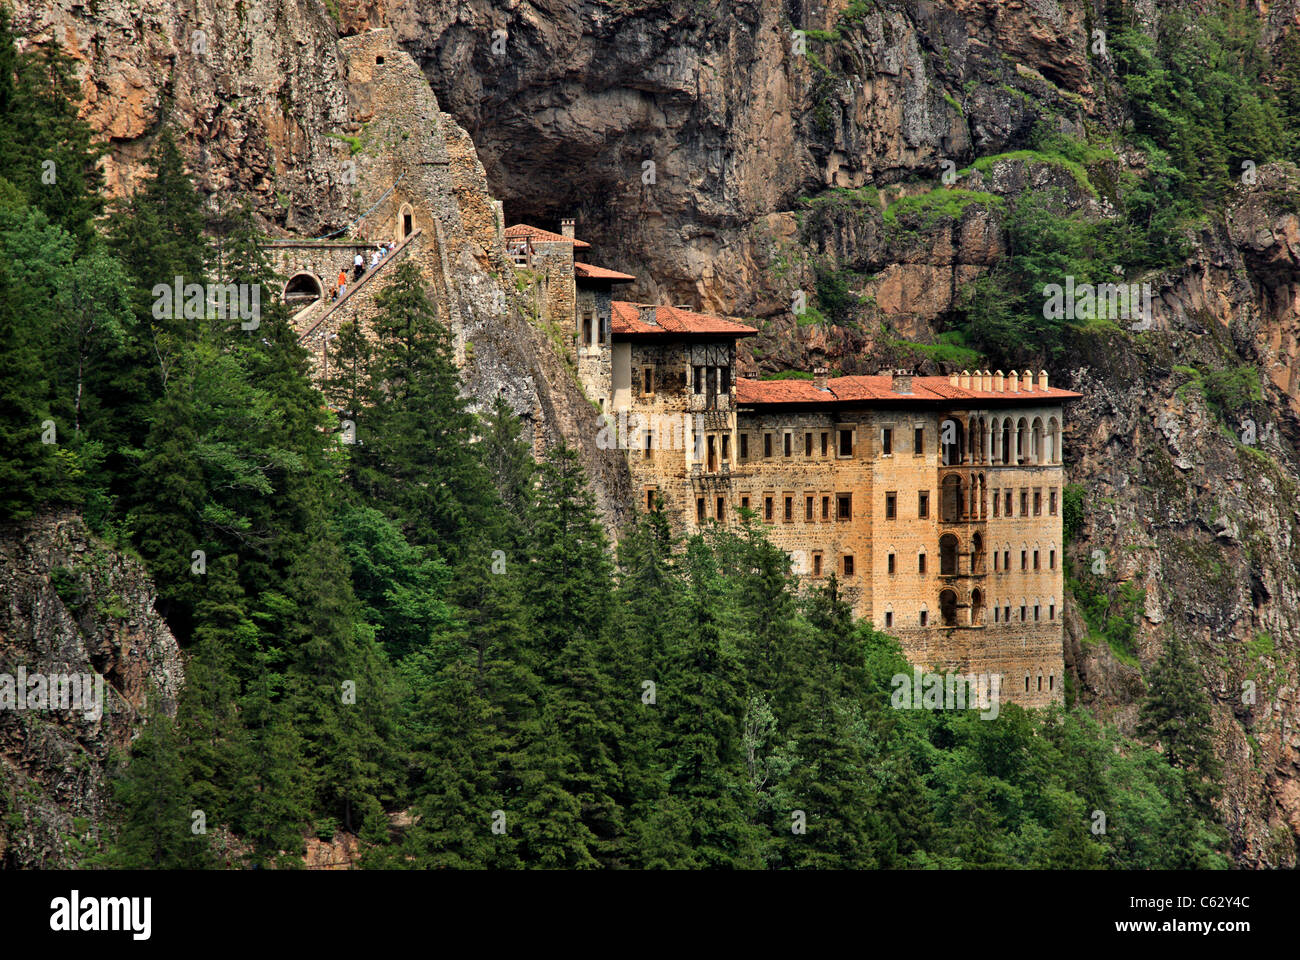 Sumela monastery one of the most impressive sights in the whole Black Sea region, in Altindere Valley, Trabzon province, - Stock Image